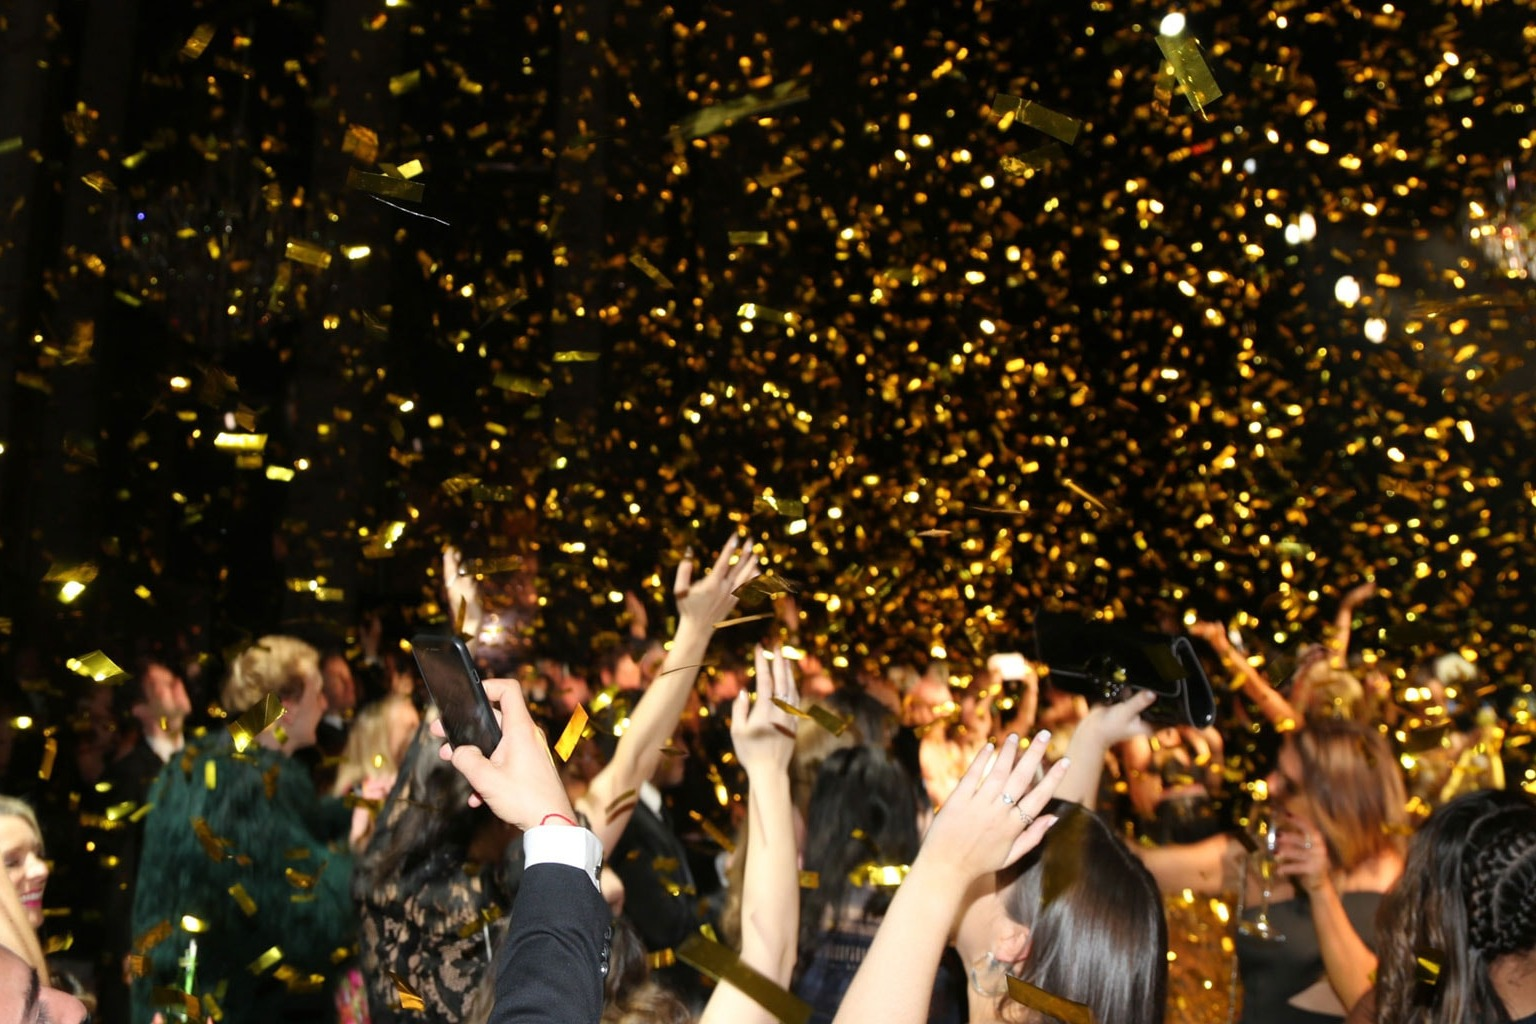 Guests celebrating with glitter in the air at NGV Gala Ball